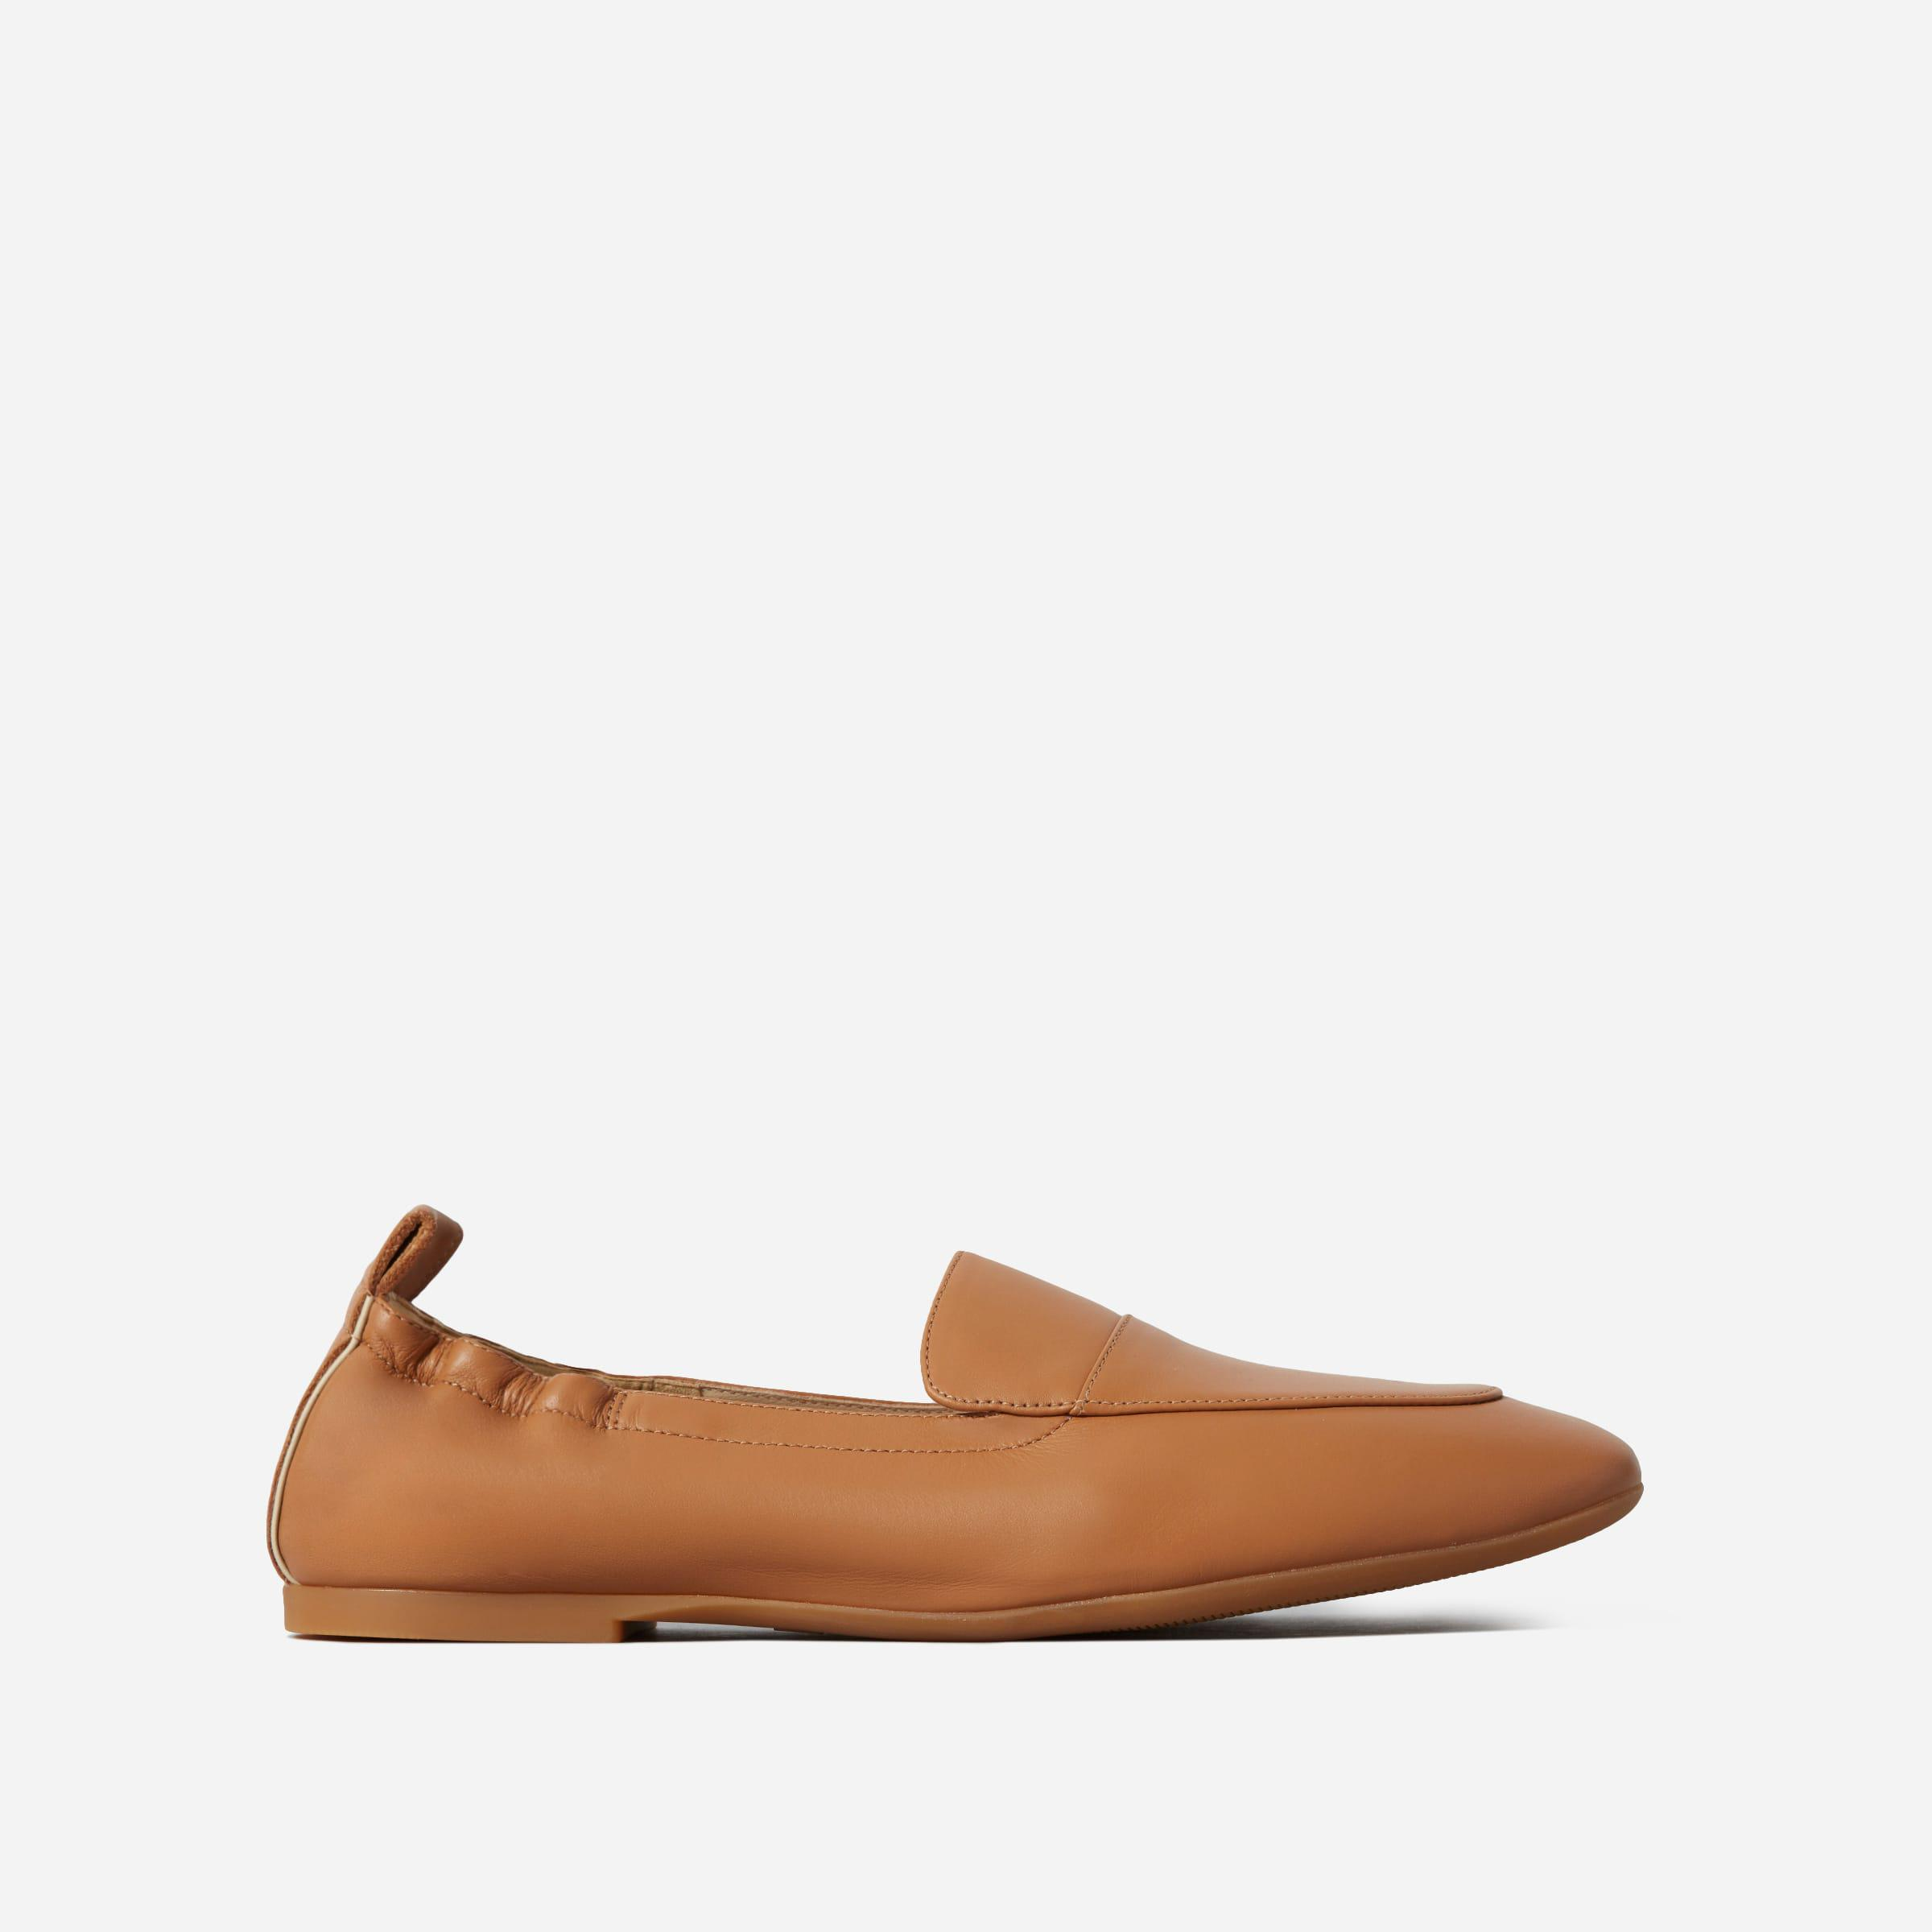 The Day Loafer